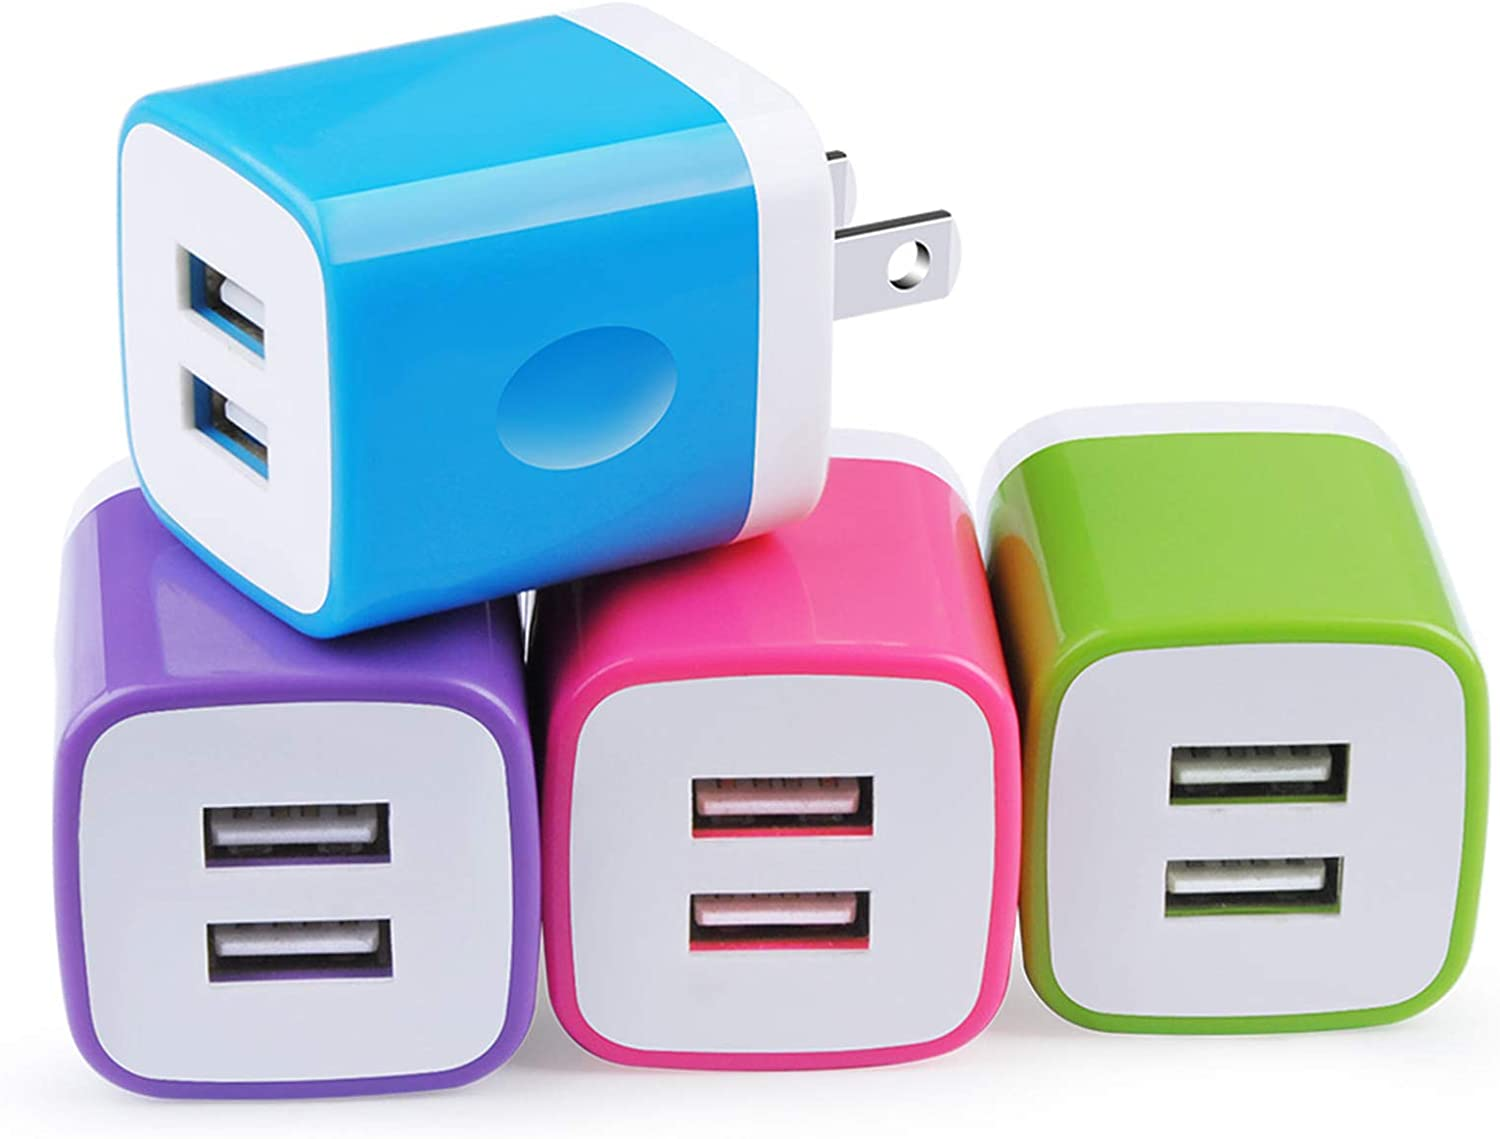 Charging Block Brick, USB Plug, NonoUV 4Pack Dual Port USB Wall Charger Travel Adapter Box Compatible with iPhone 11 Pro Max XR XS X 8 7 6 6S Plus, iPad, Samsung Galaxy S20 S10 S9 S8 Note 10 9 8 A50